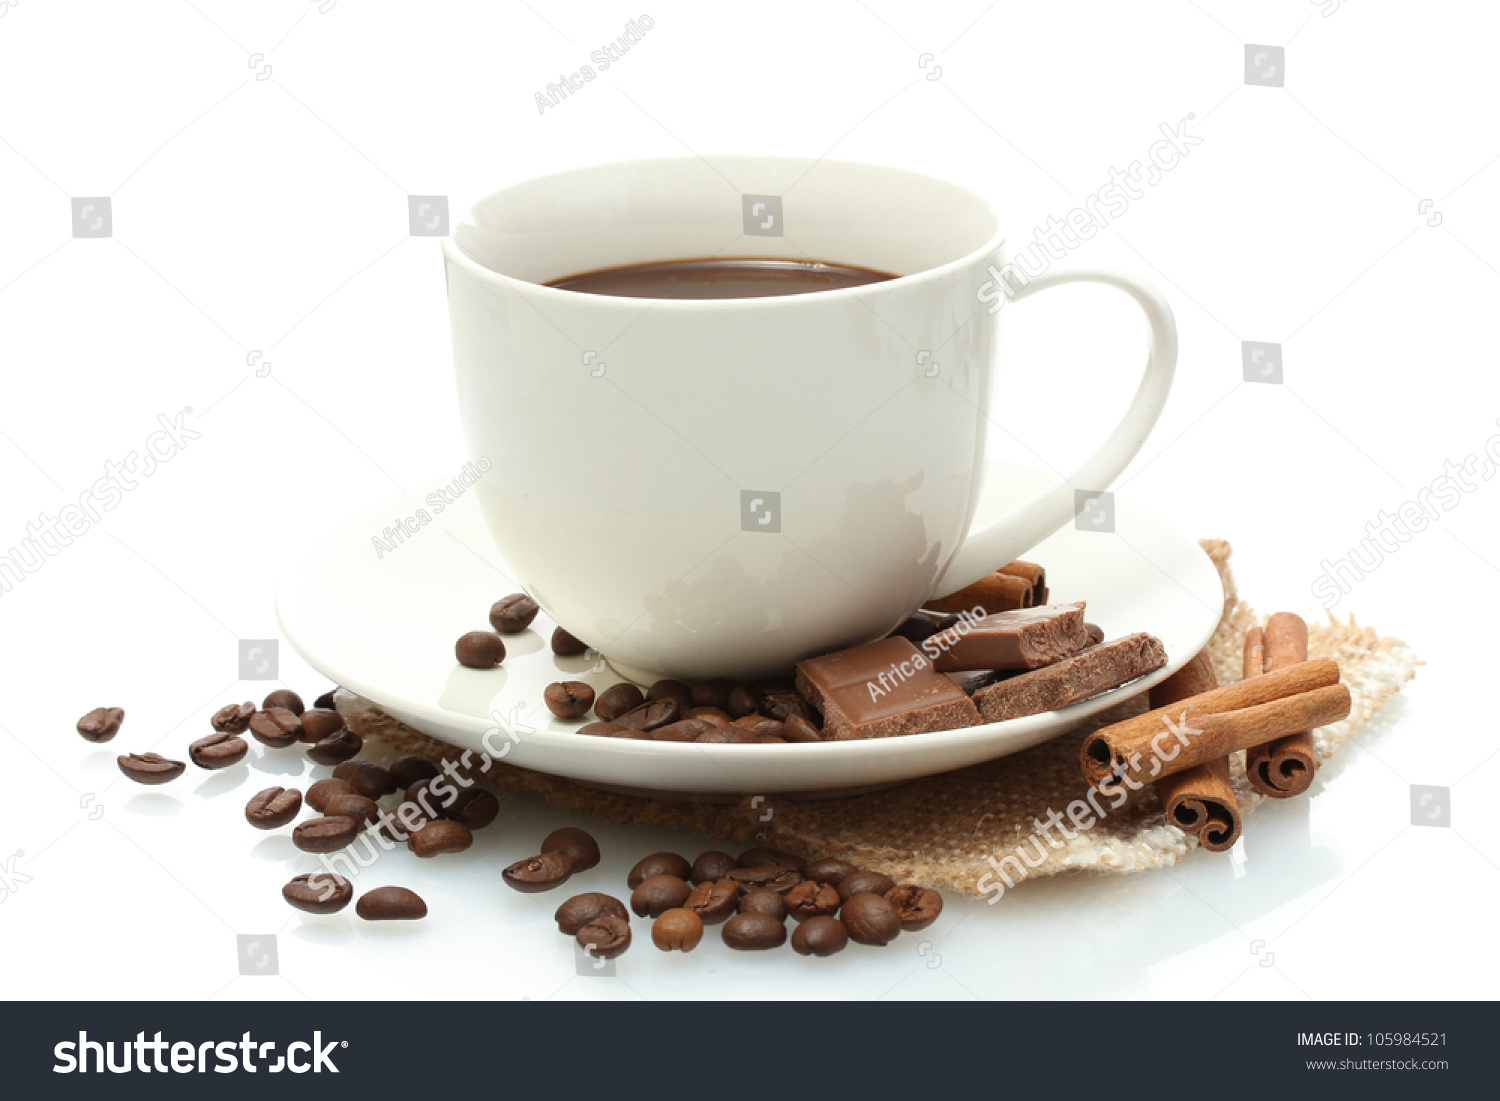 how to use cinnamon sticks in coffee